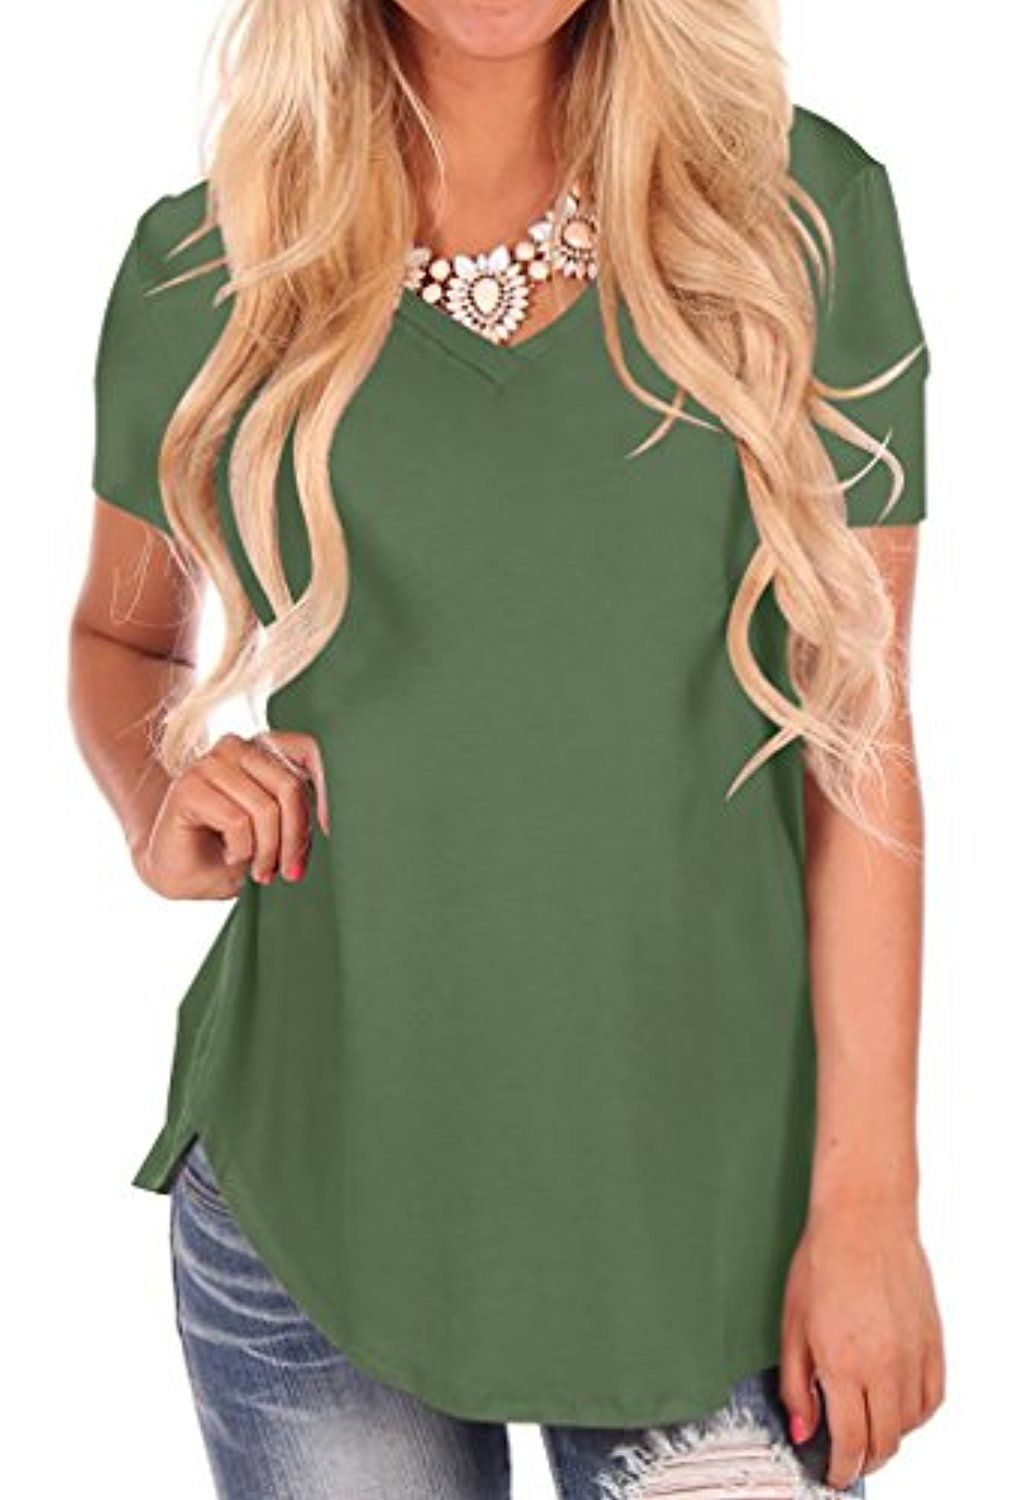 ee5cd850f3cb Material: 95% Cotton 5% Spandex - Imported - Pull On closure - The  lightweight fabric is soft and has some stretch - V Neck short sleeve T- shirt, ...